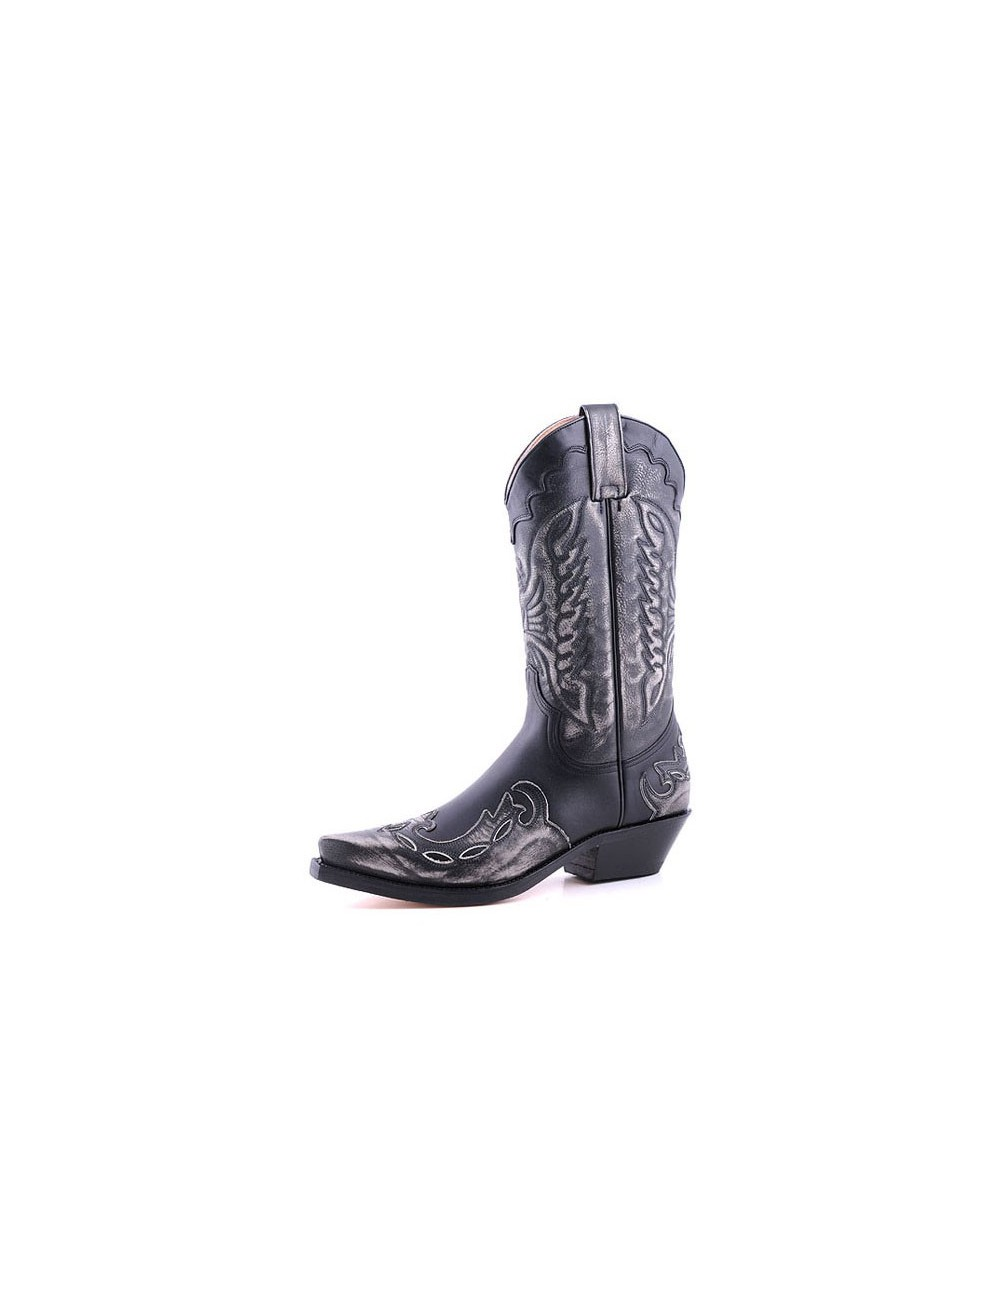 Bottes homme grande taille - Santiags mexicaines grande taille cuir noir